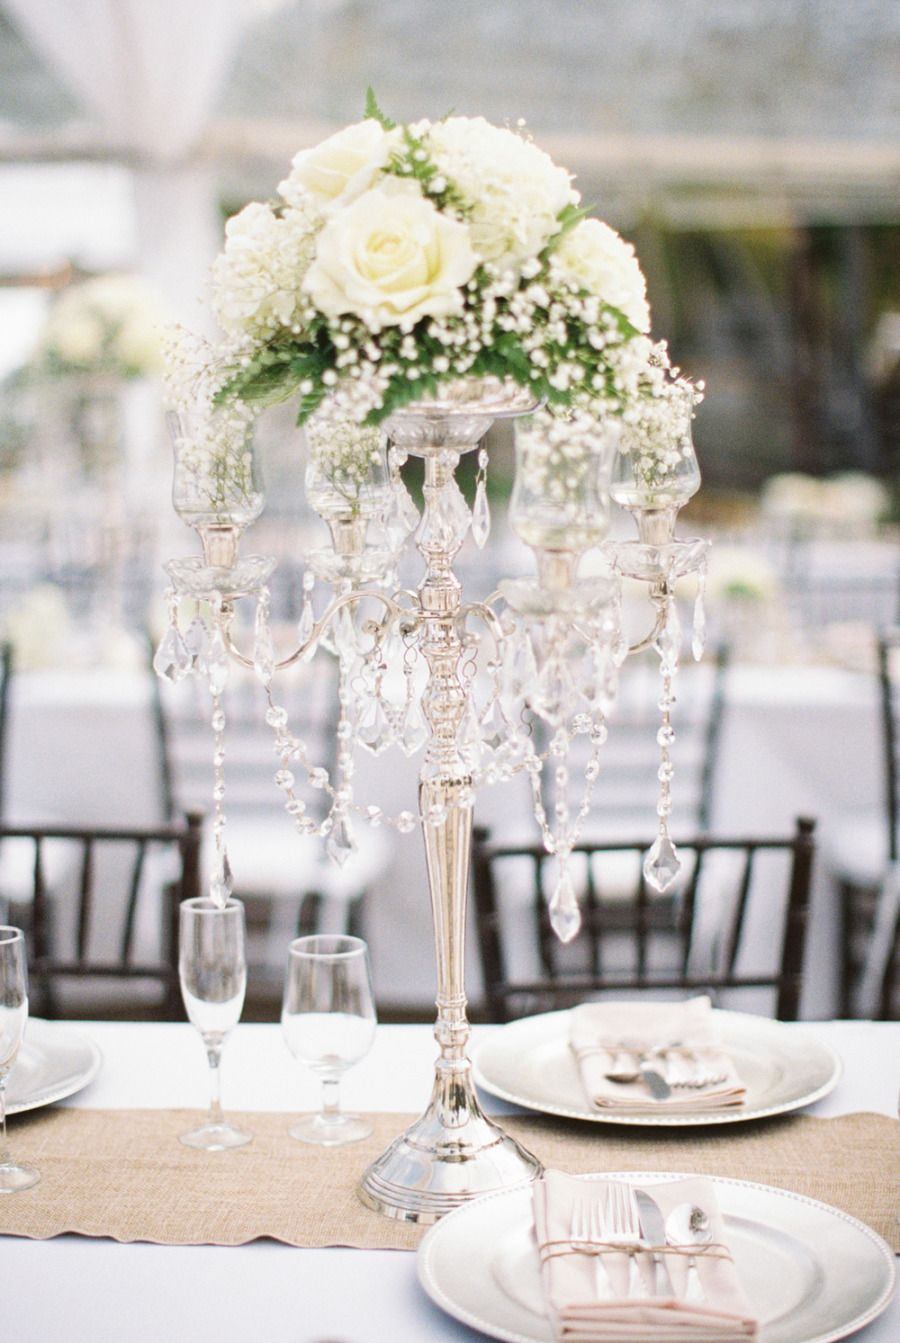 Simple Centerpieces For Wedding : Wedding centerpieces extravagant or simple